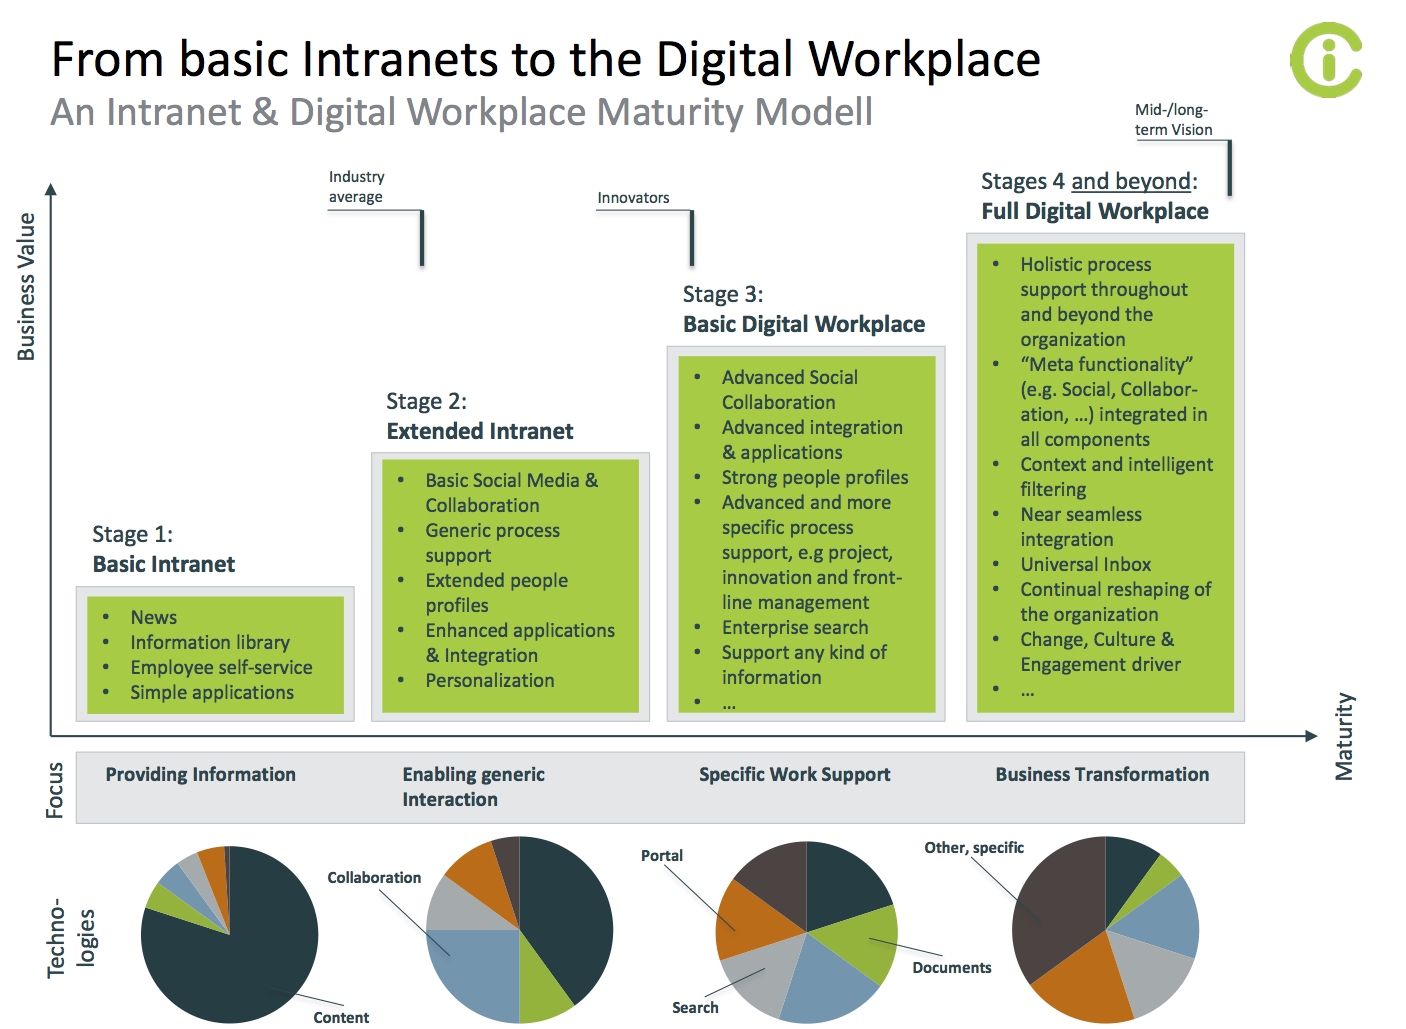 From basic to the Digital Workplace Knowledge